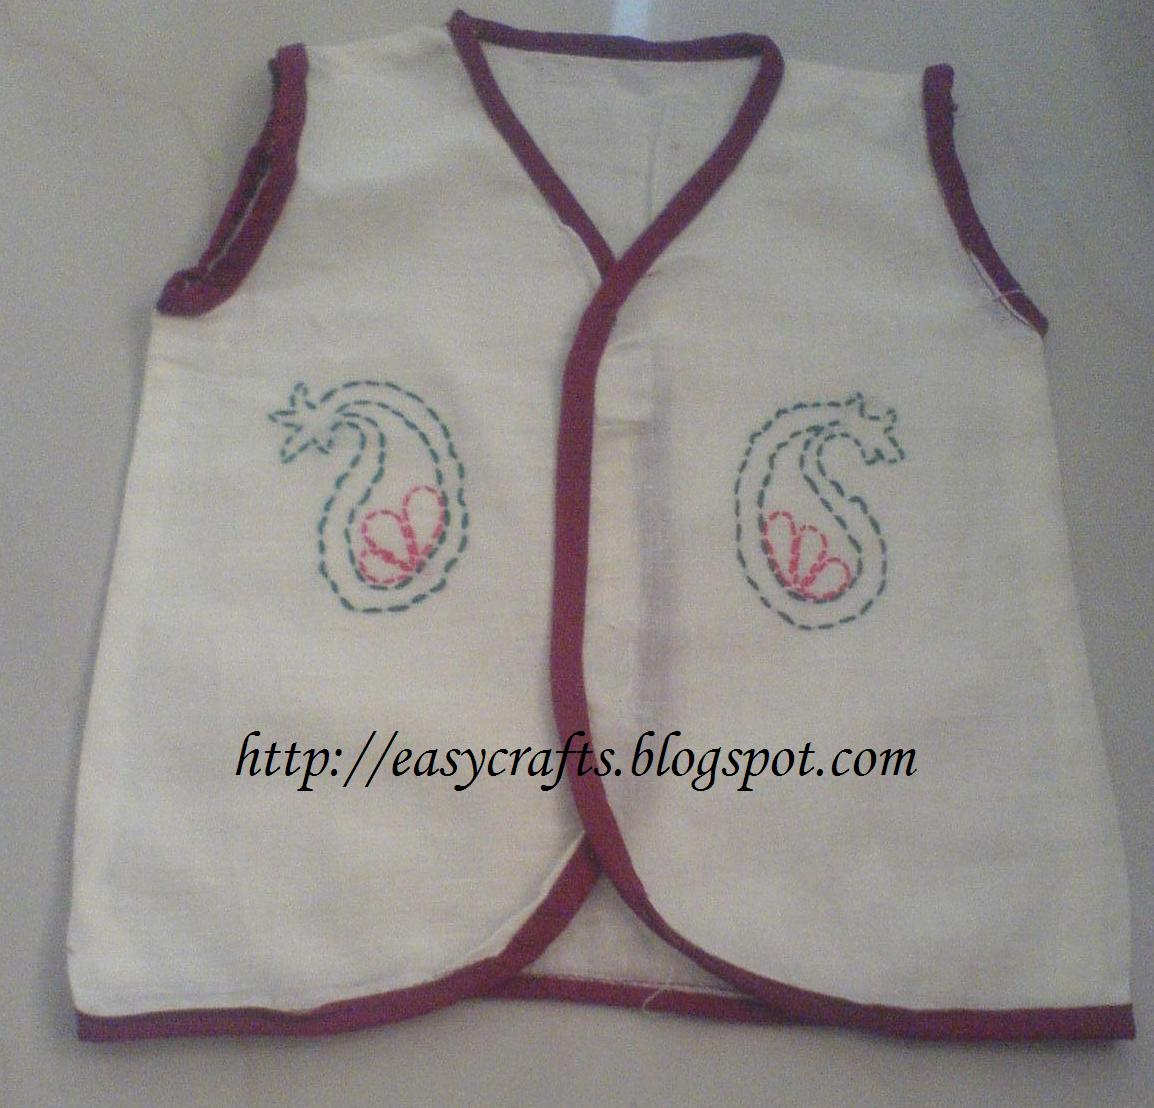 Easy Crafts - Explore your creativity: New born baby dress pattern 2